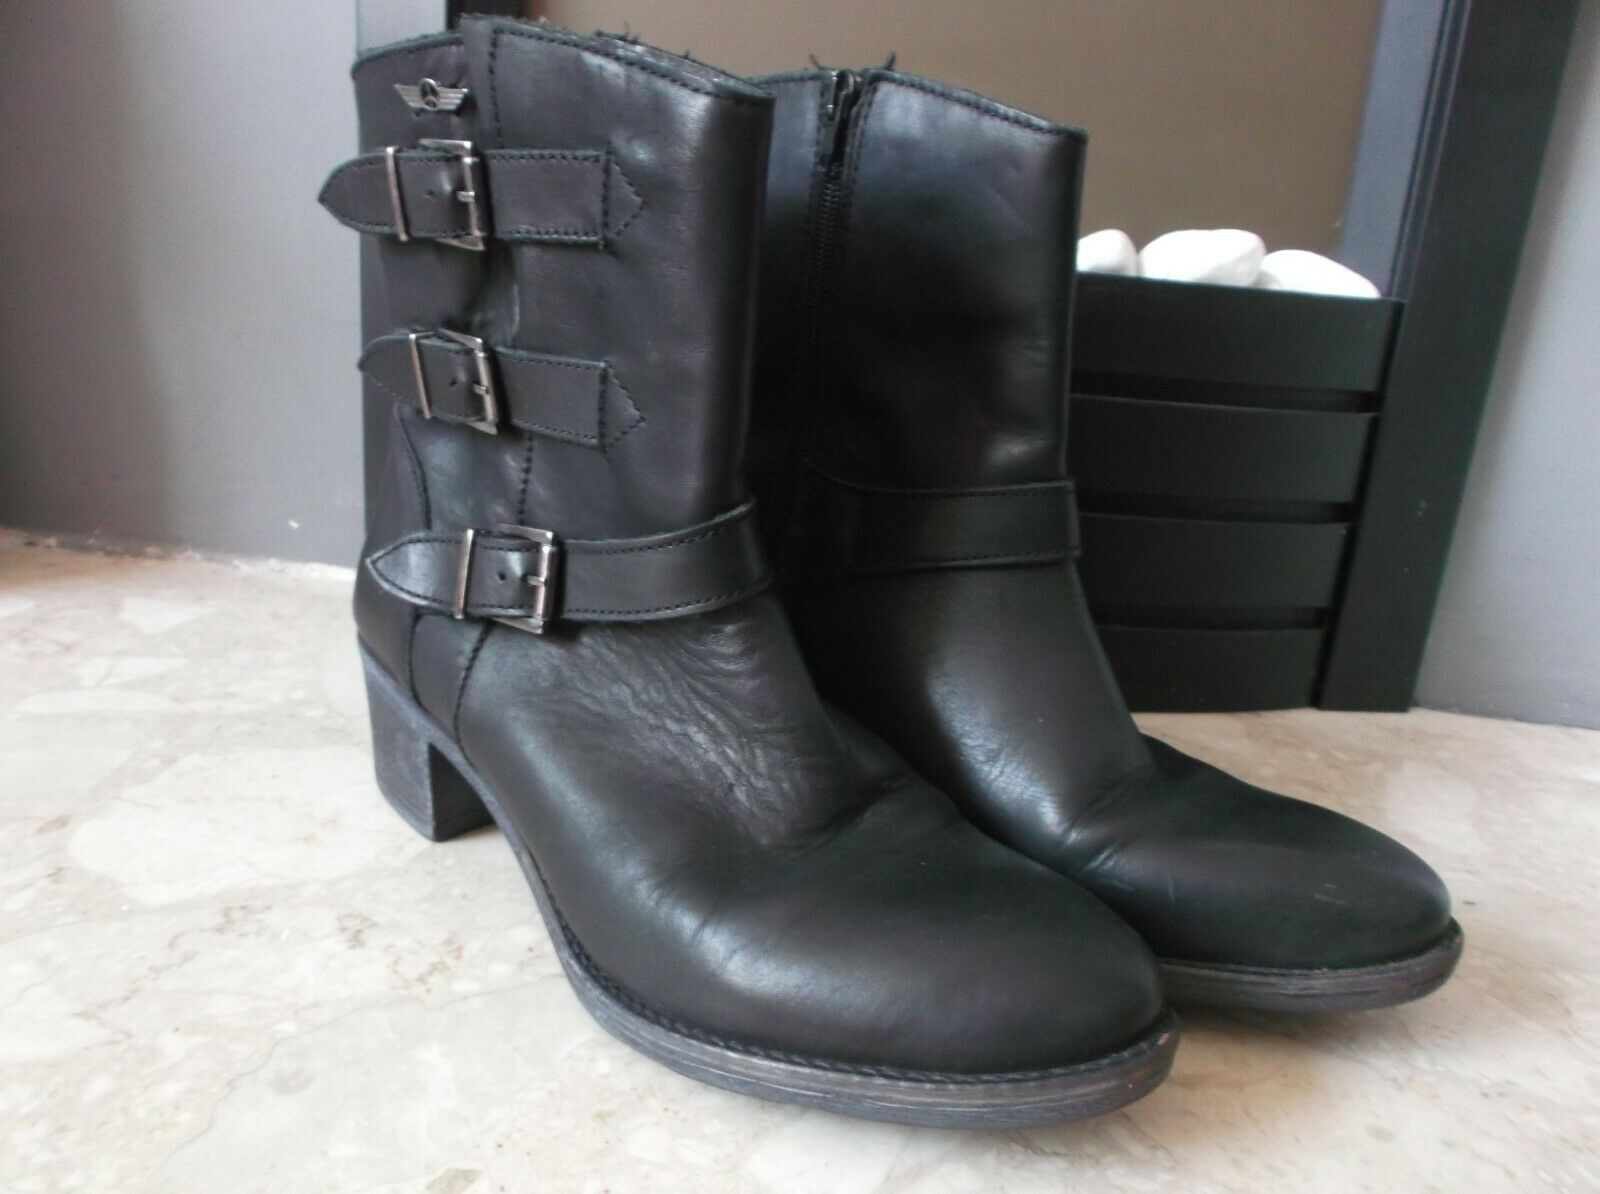 Flyer Boots & Boots Black Leather Buckles Zip Up Ankle Boots Size EU 41 UK 7